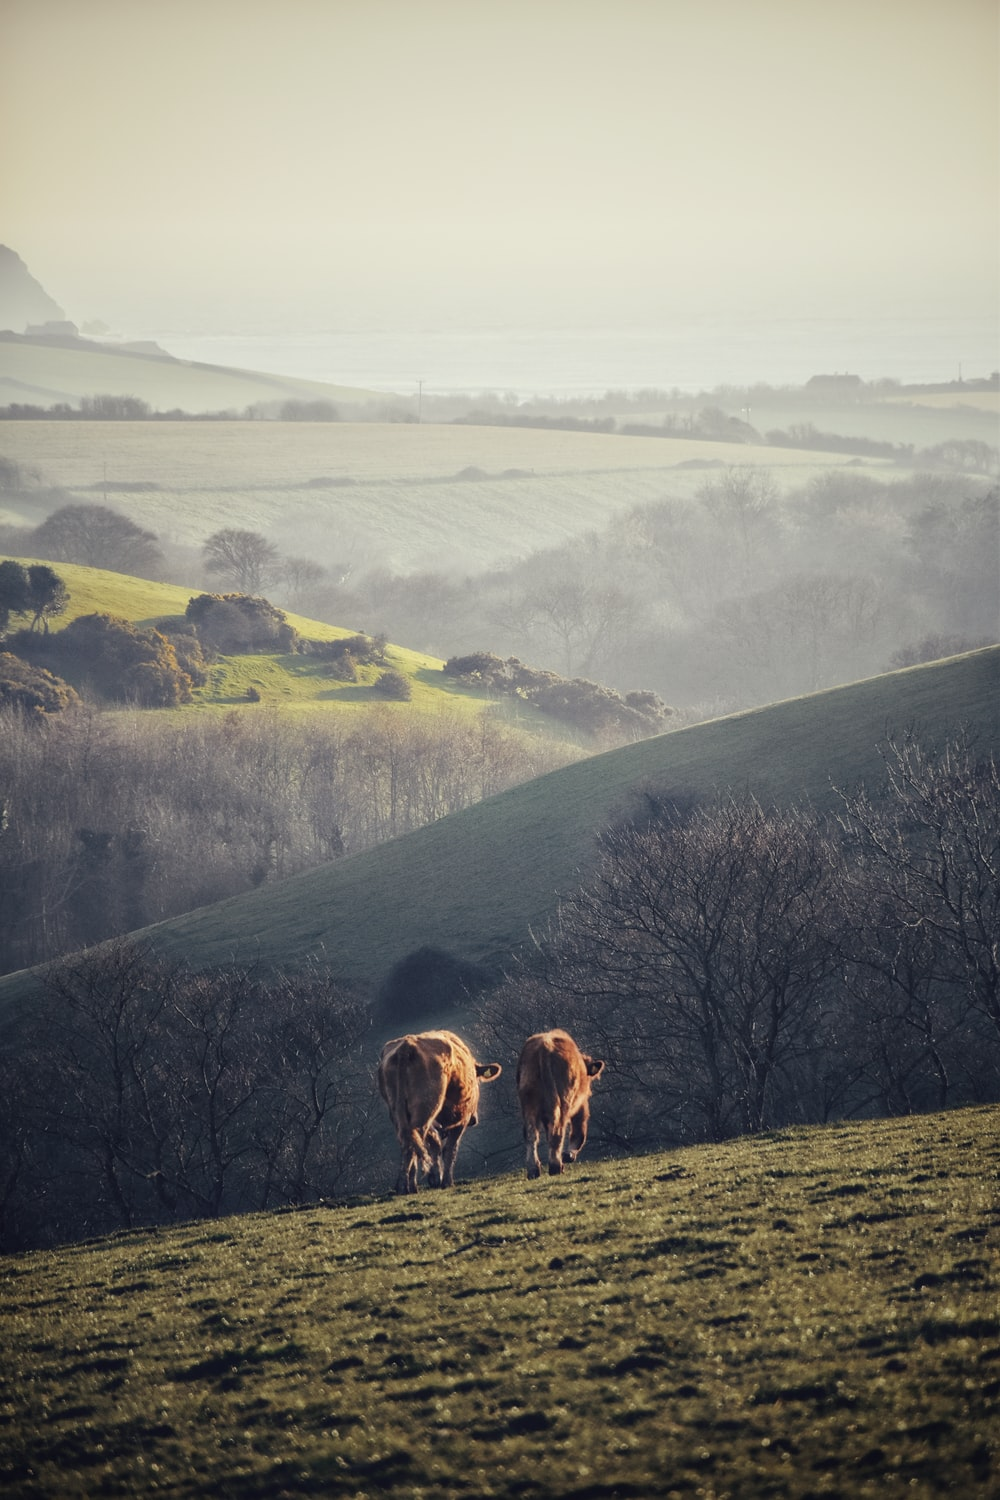 cows on green field facing hills and trees